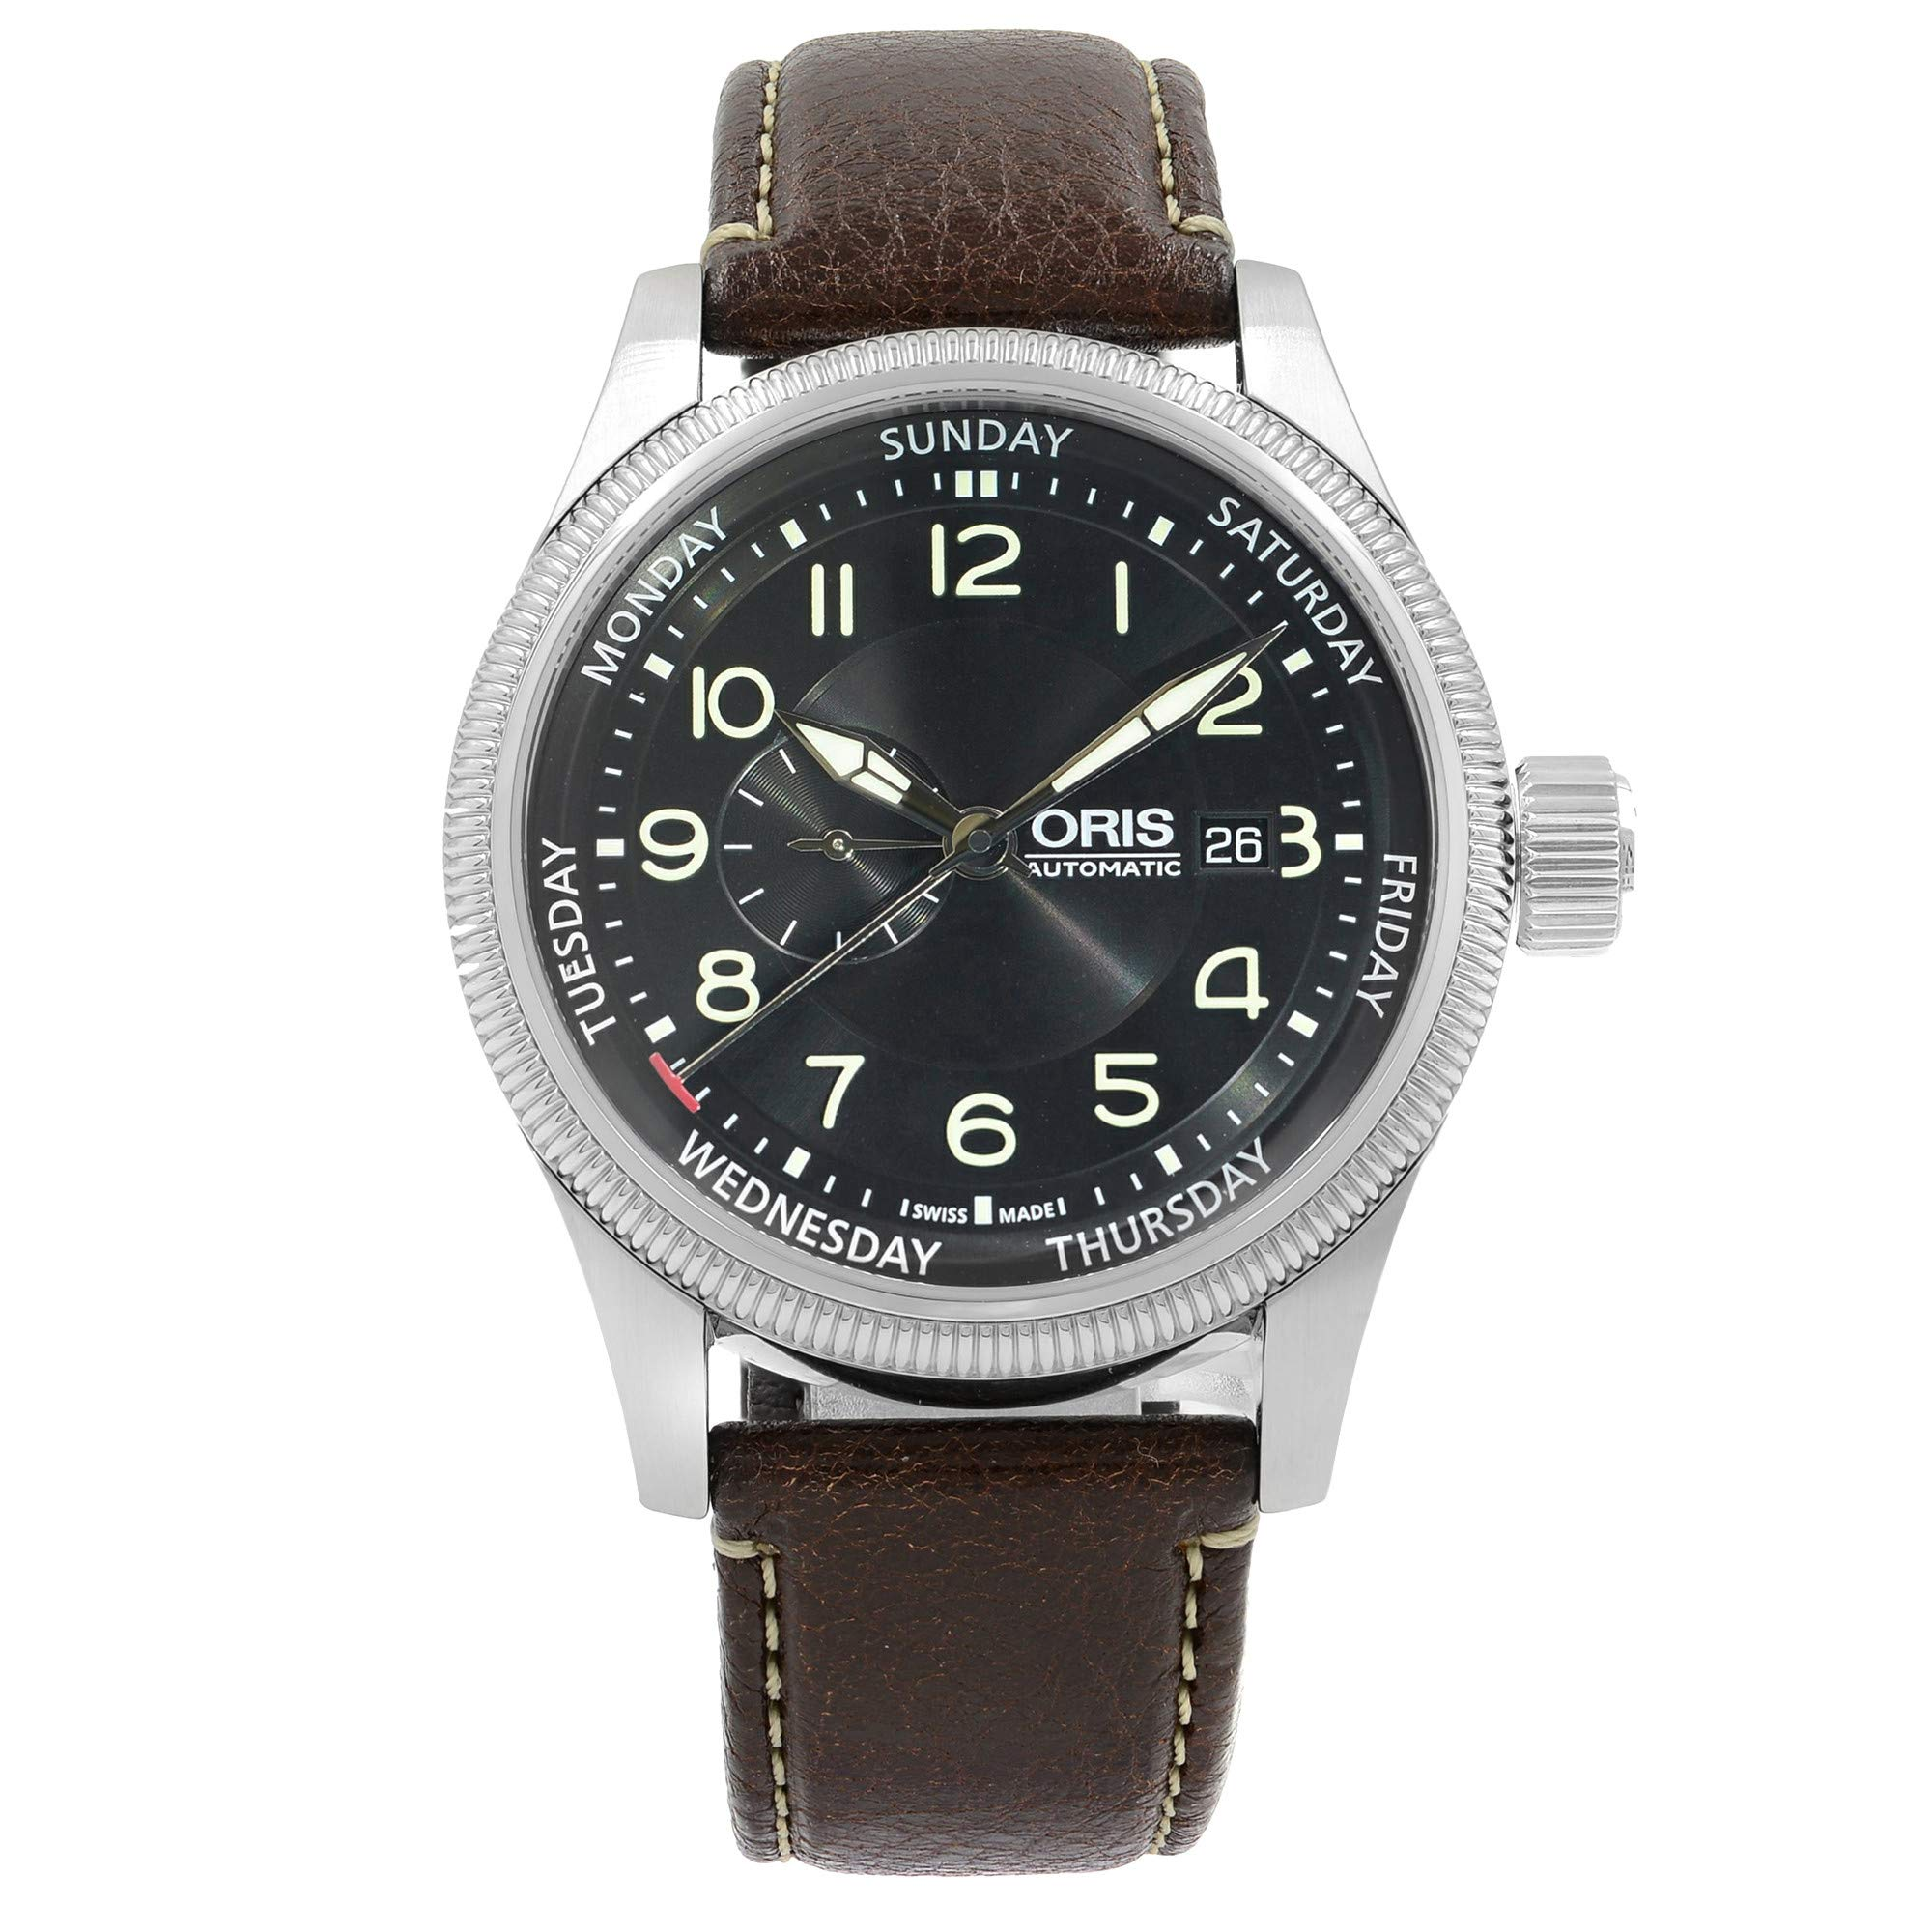 Oris Big Crown Automatic-self-Wind Male Watch 745-7688-4034LS (Certified Pre-Owned) by Oris (Image #1)